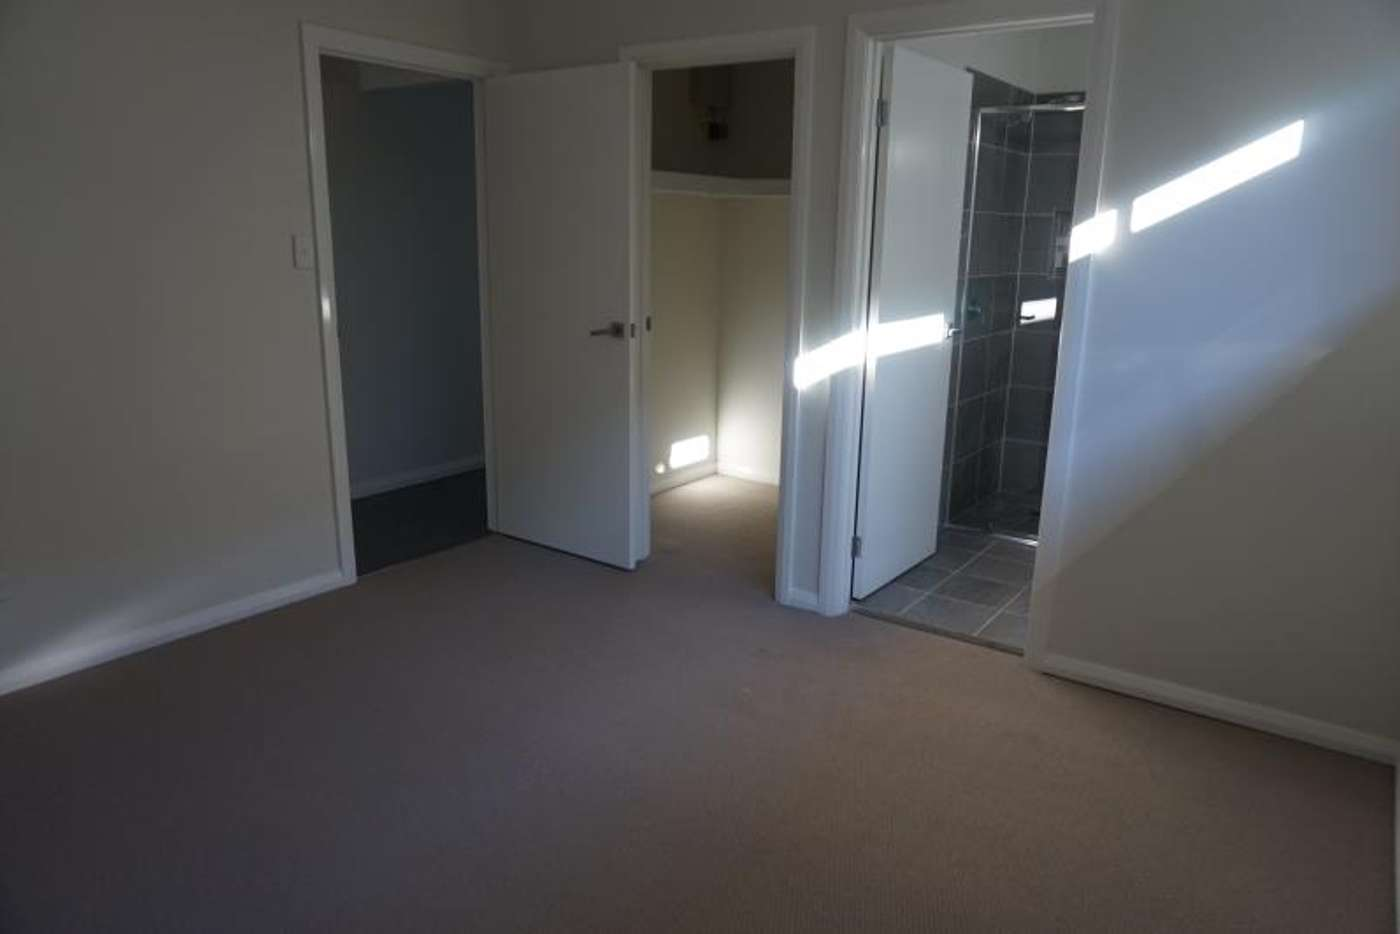 Fifth view of Homely house listing, 11 Winn Grove, Camden NSW 2570